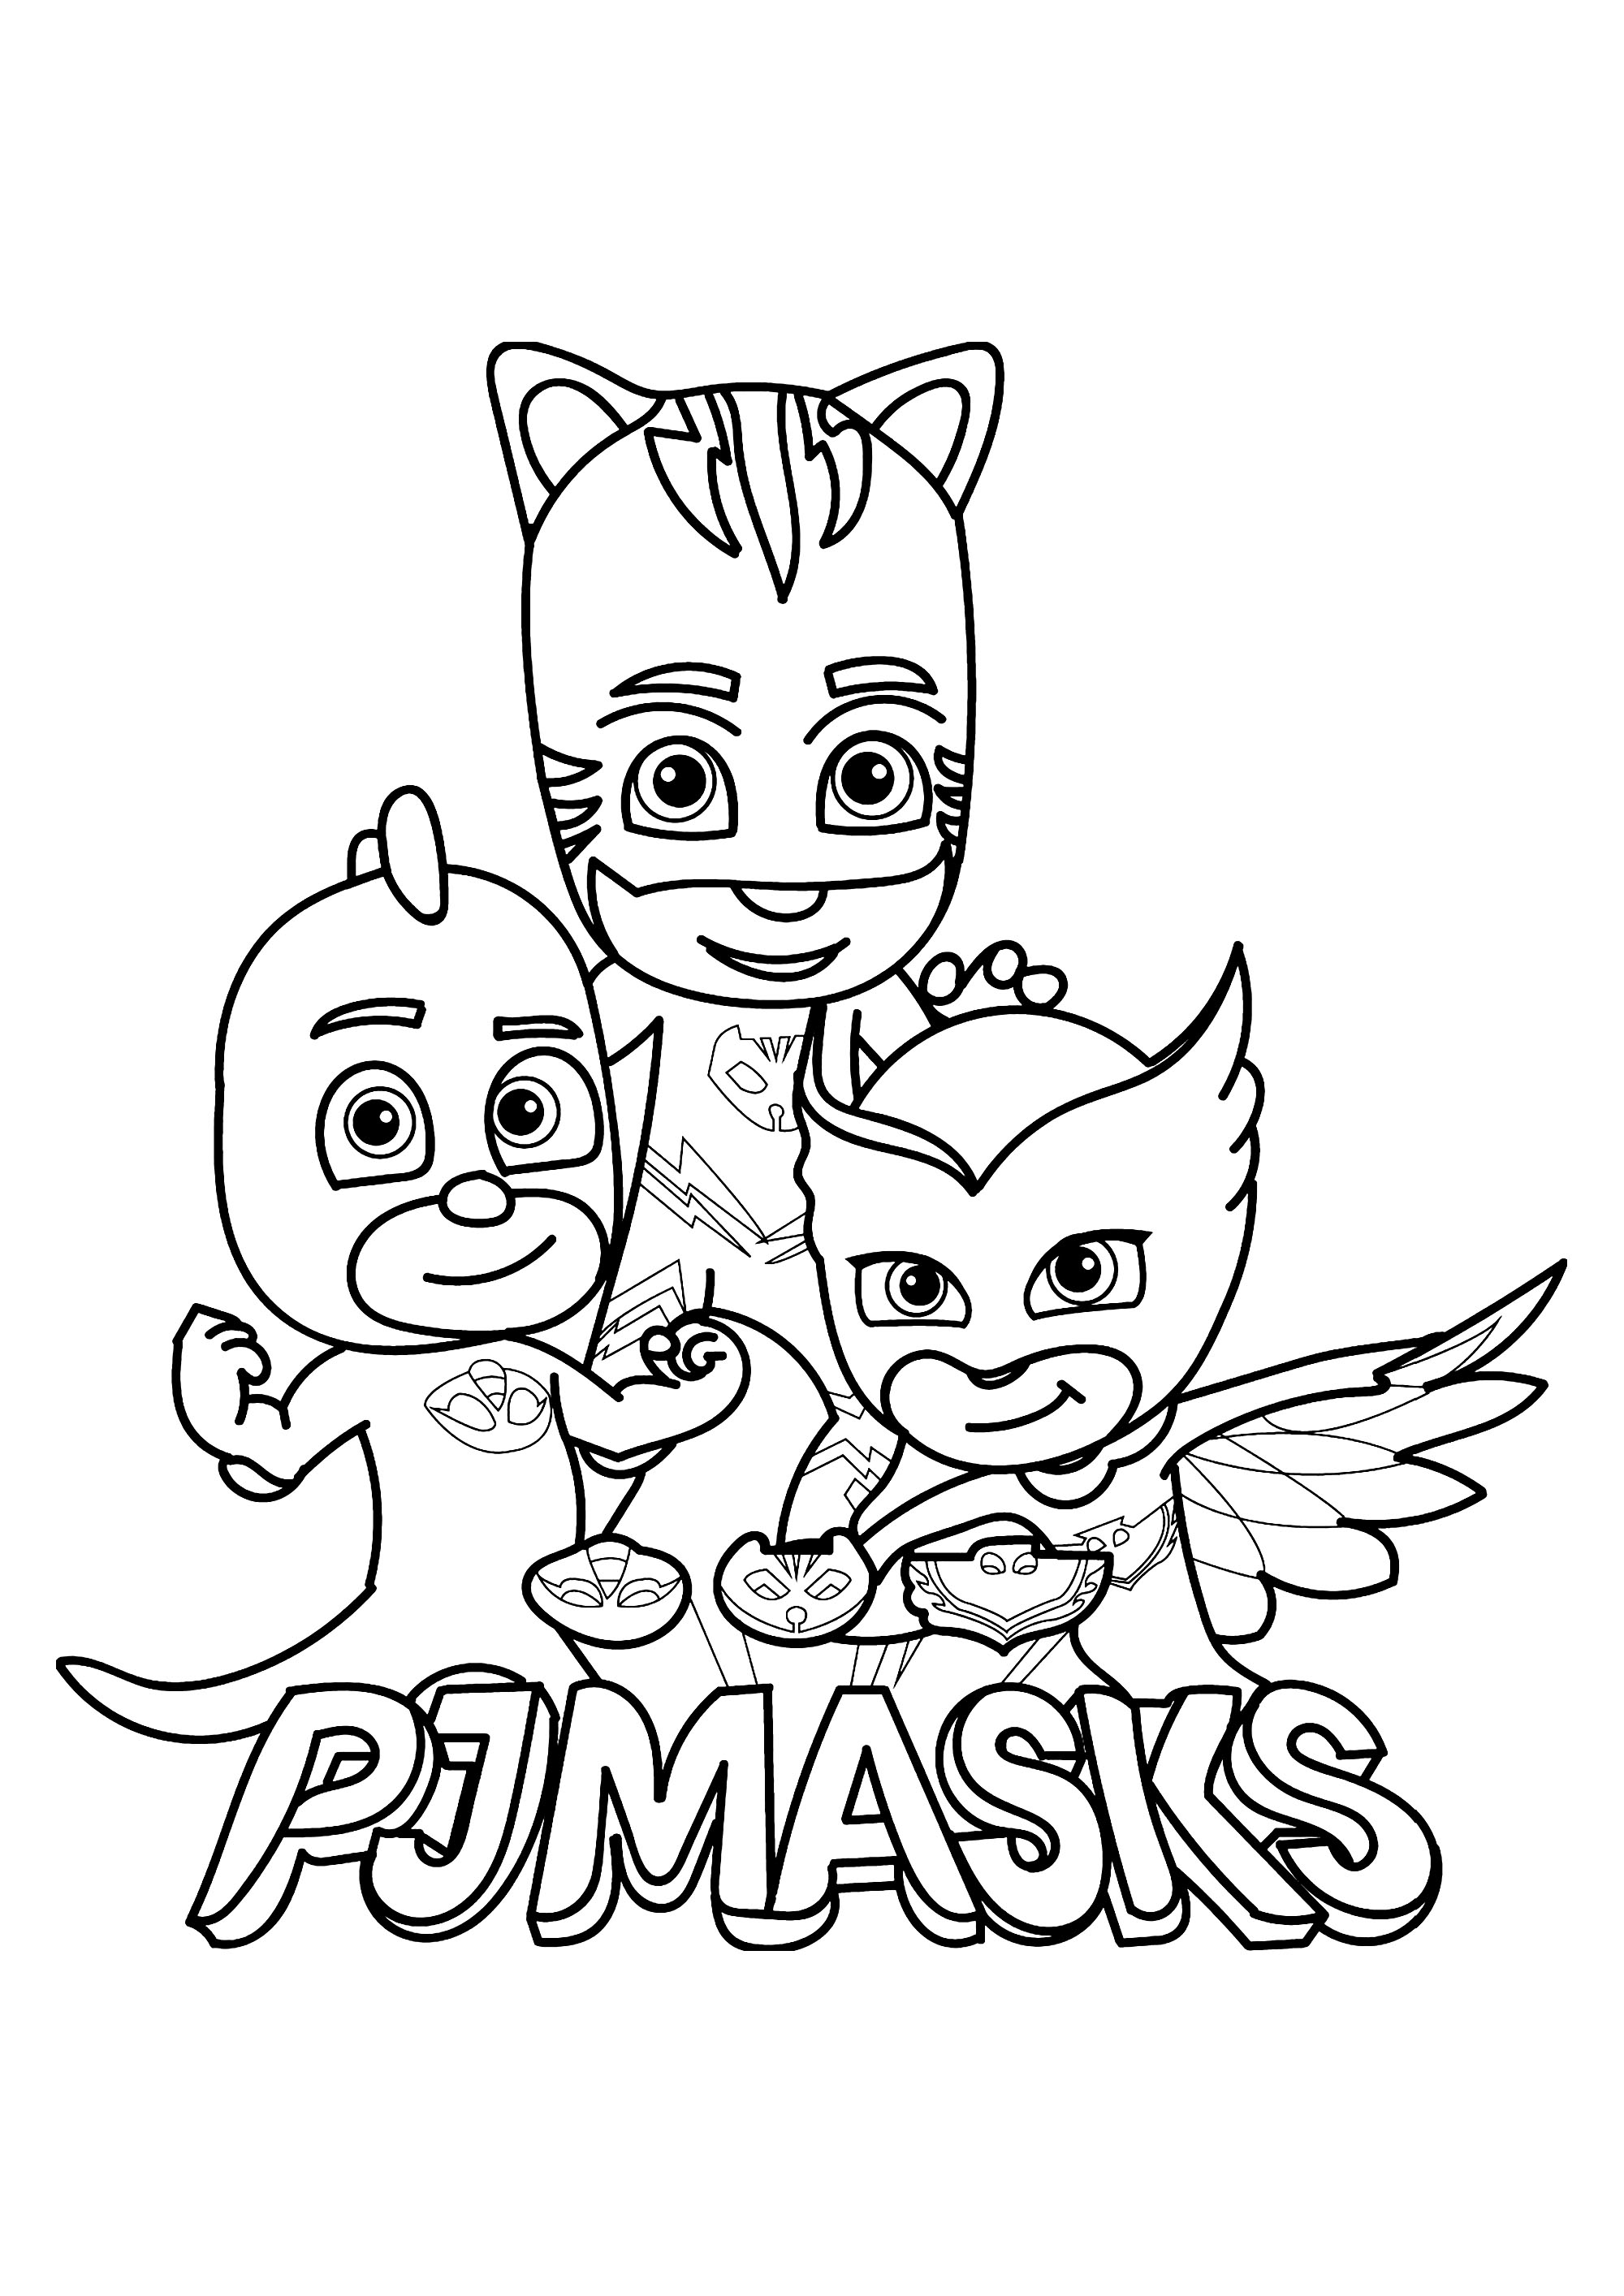 coloring pictures for kids cute coloring pages best coloring pages for kids pictures coloring for kids